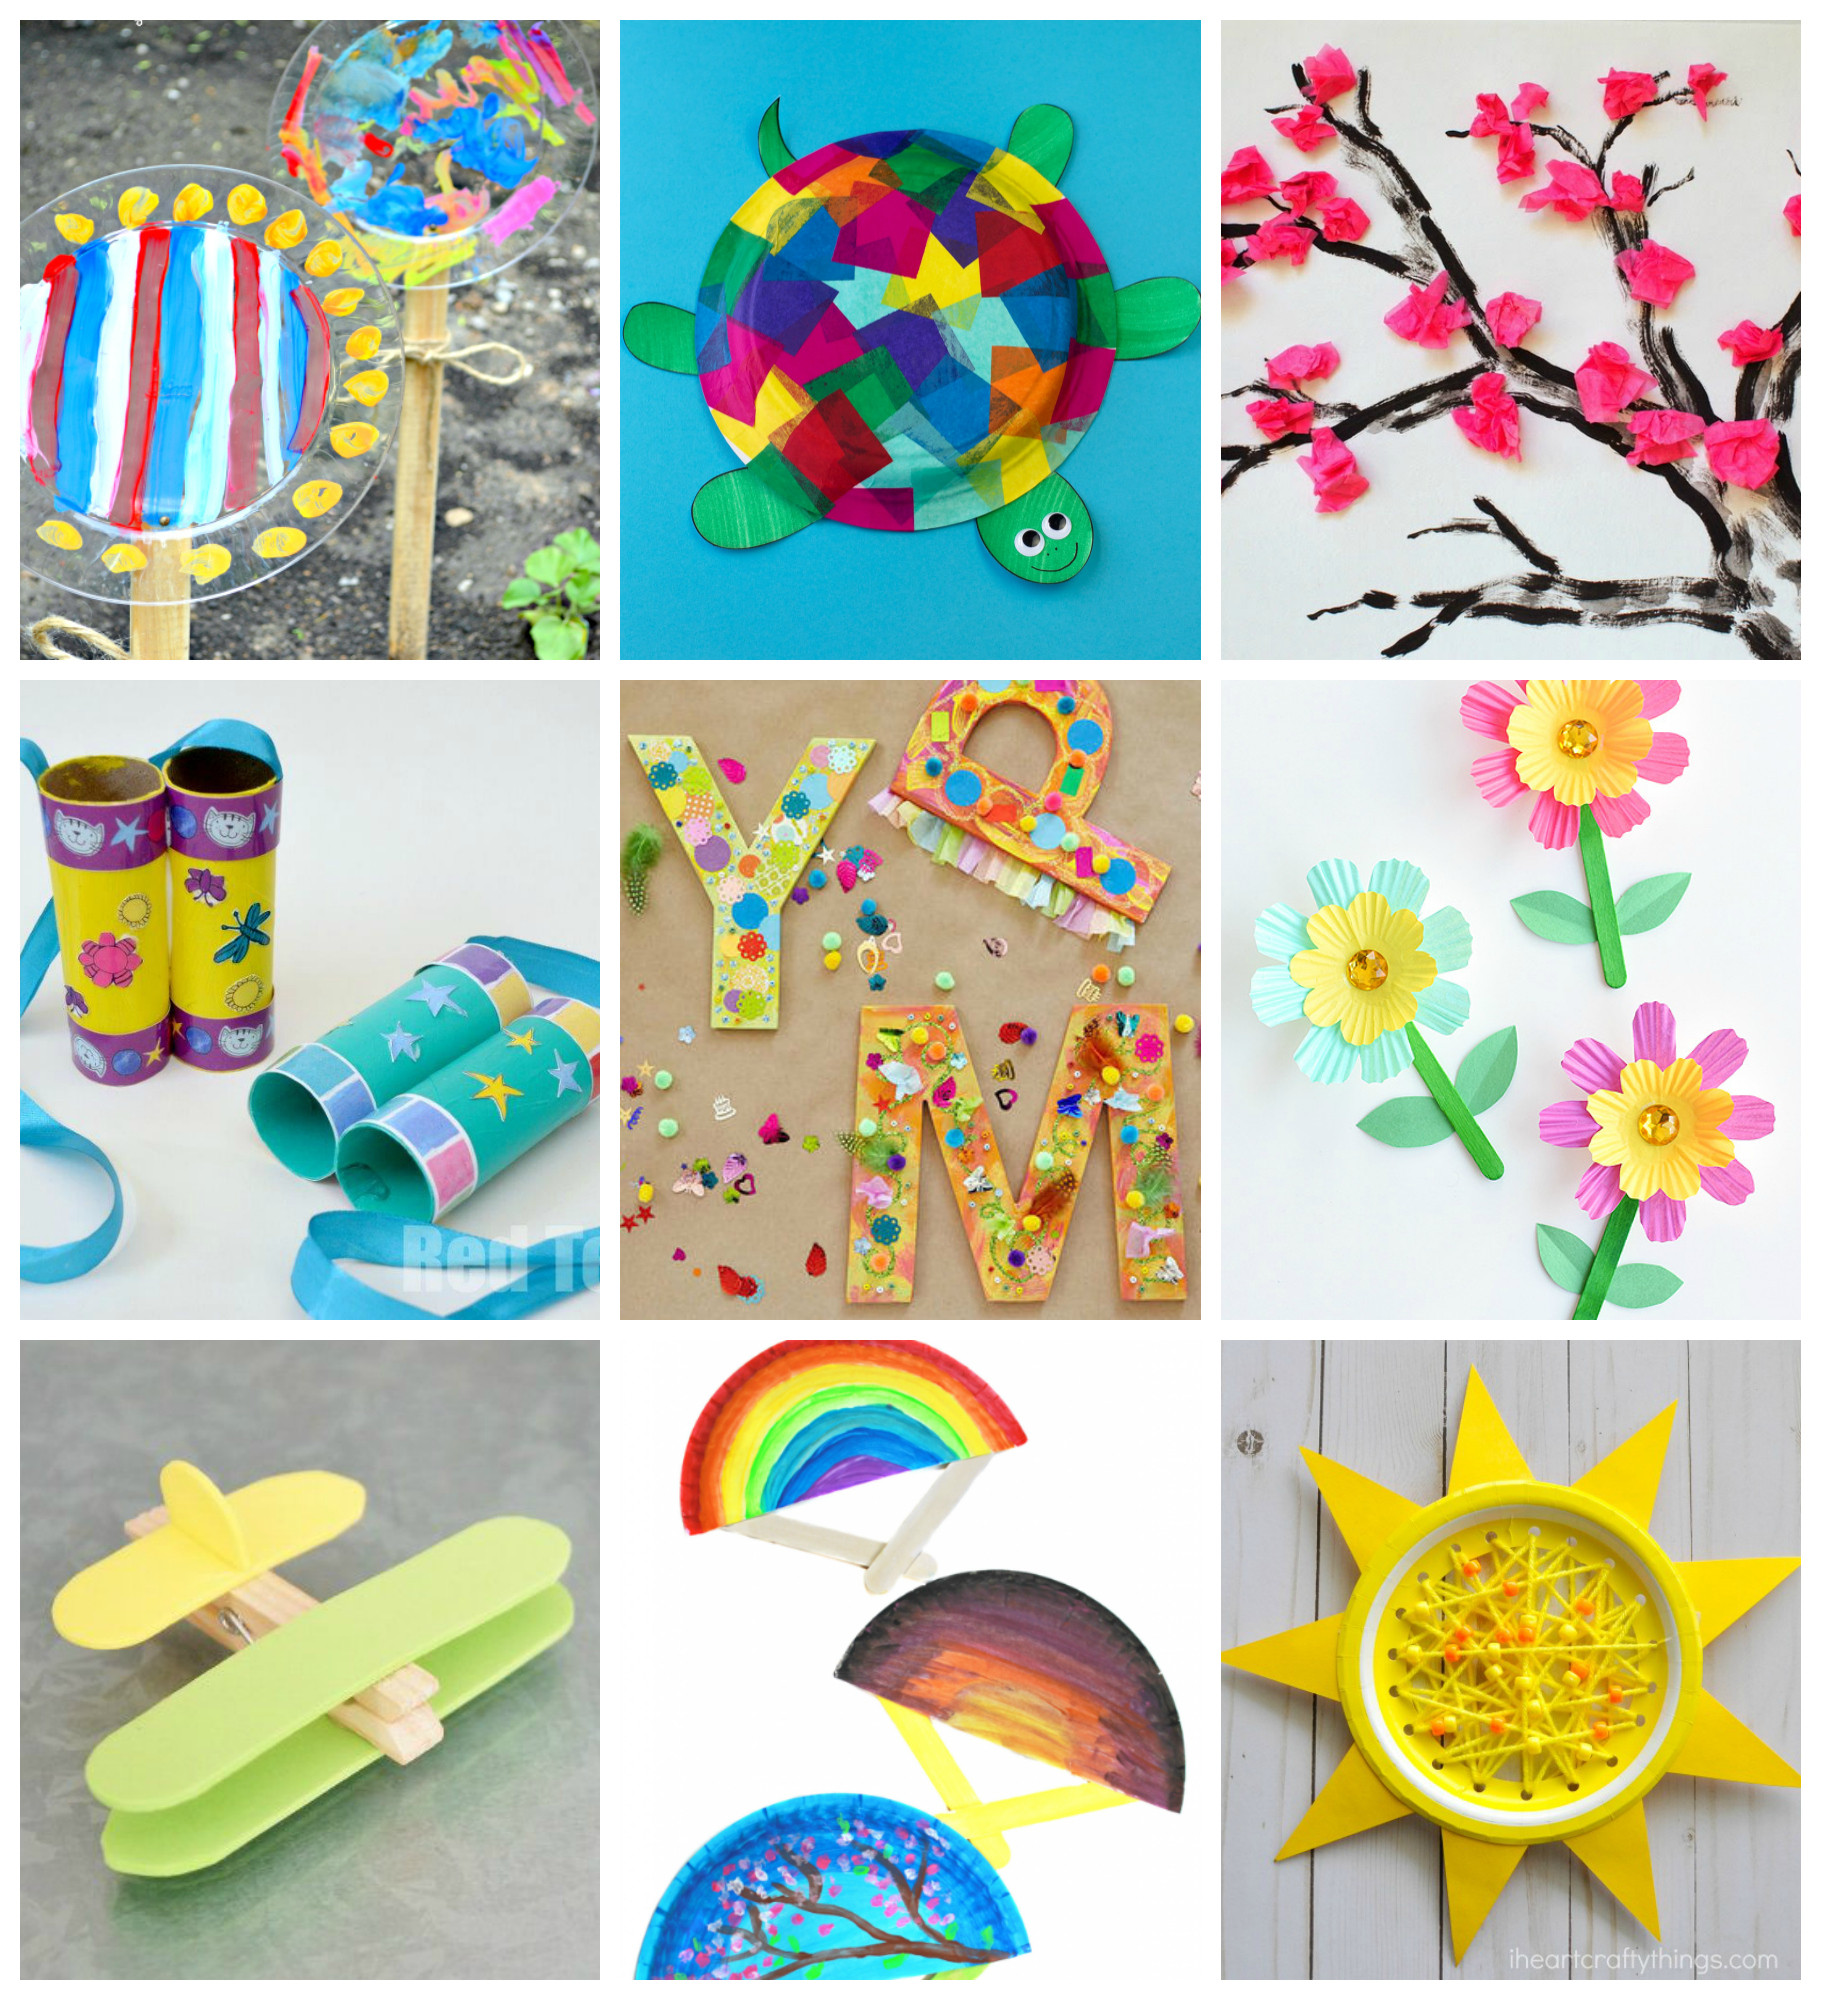 Best ideas about Cool Arts And Crafts For Kids . Save or Pin 50 Quick & Easy Kids Crafts that ANYONE Can Make Now.